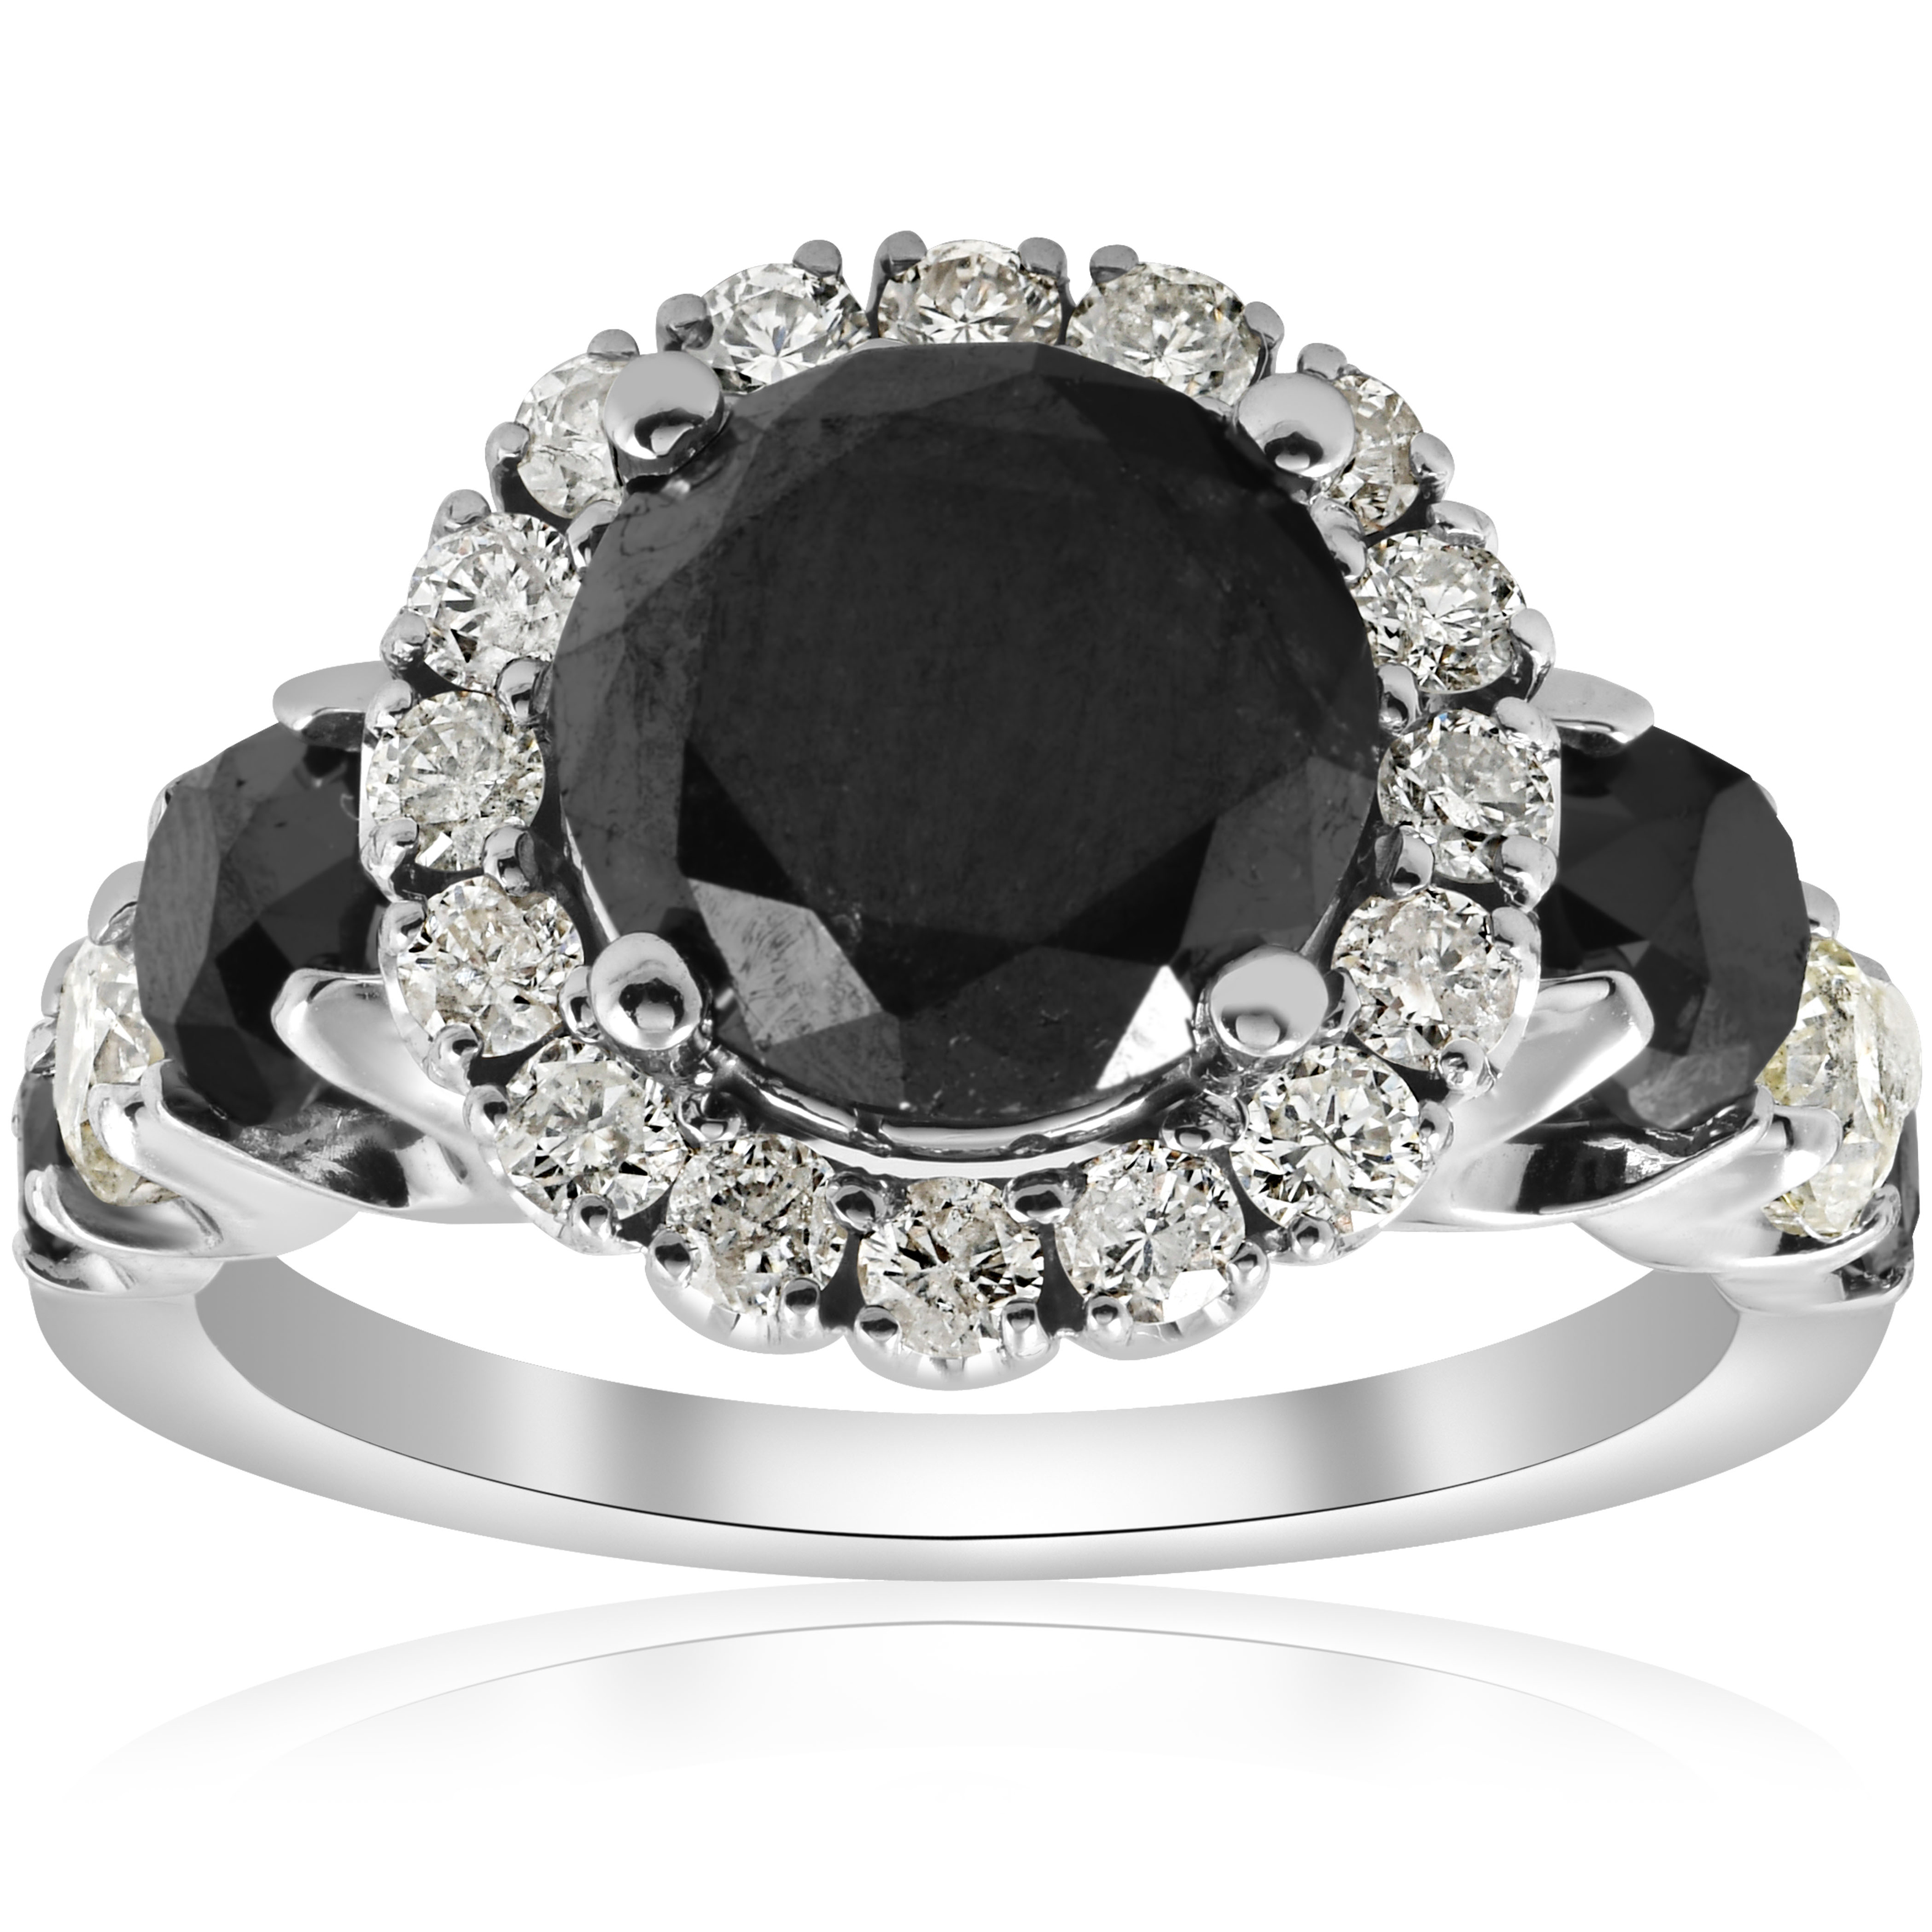 9e77e2ada6e55 Details about 5ct Black & White Diamond Halo Engagement Ring 14k White Gold  Jewelry Treated